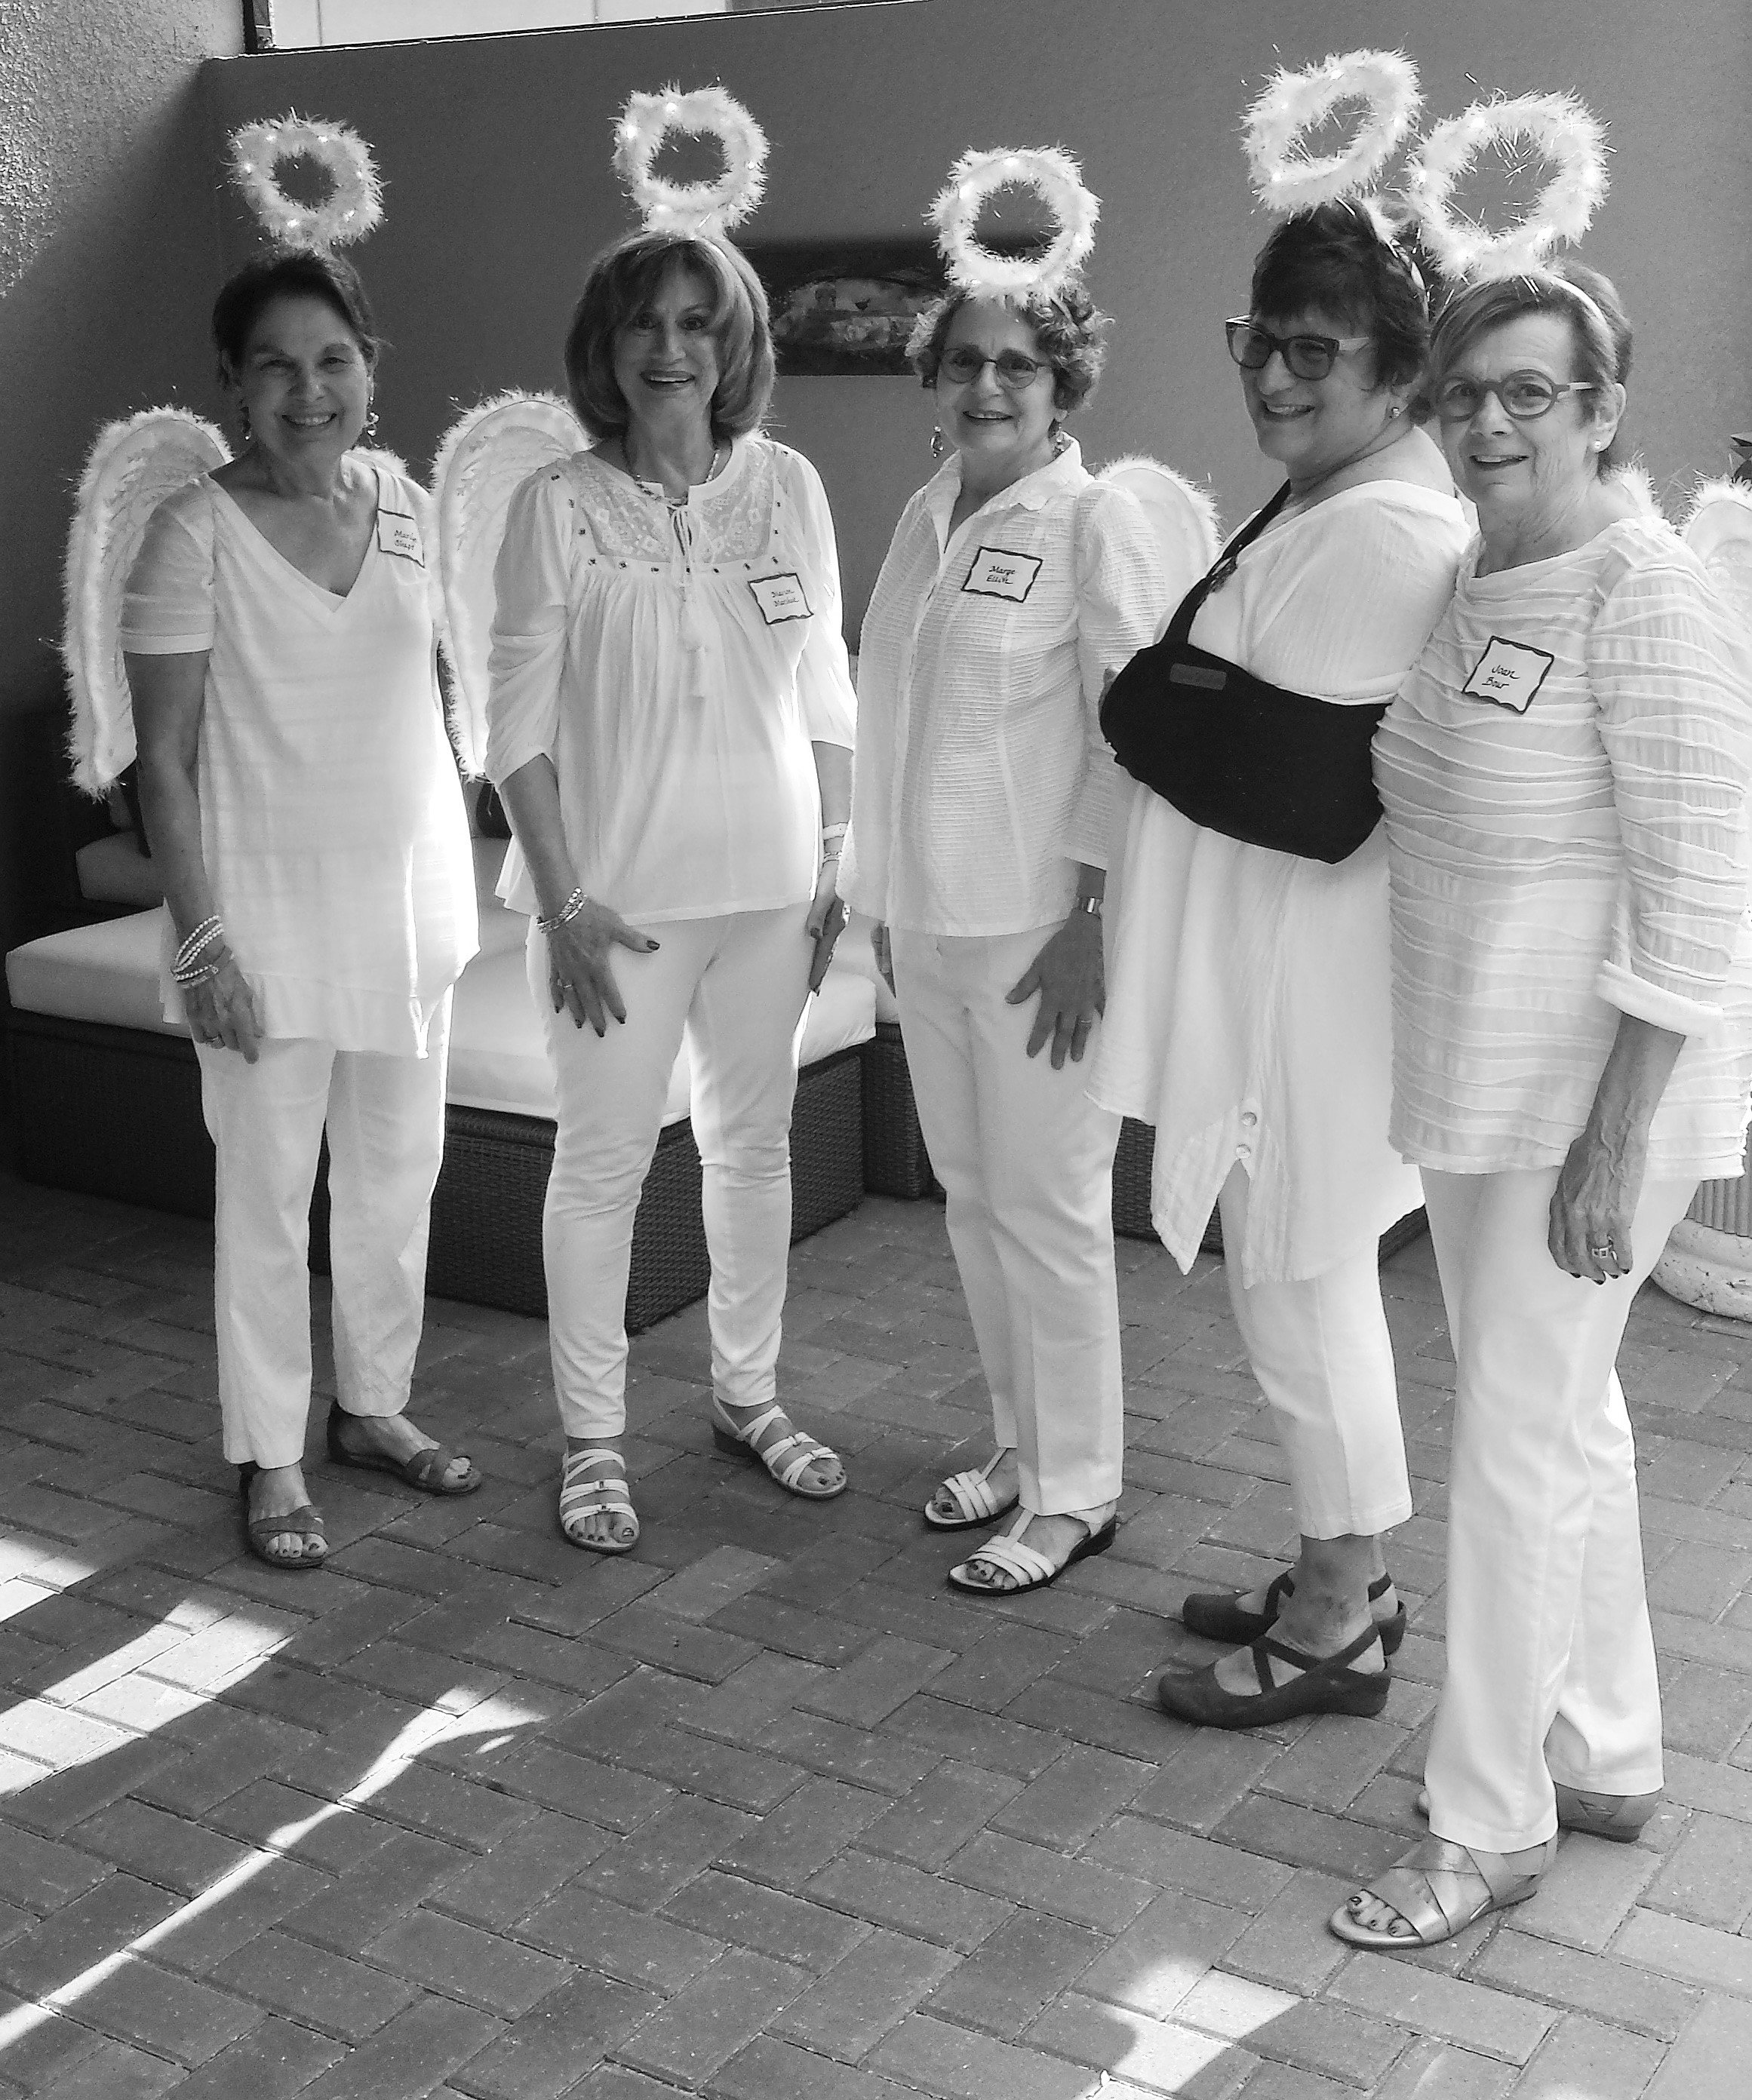 Left to right: Marilyn Shapo, Marion Marshak, Marge Ellin, Phyllis Dreyfuss (Co-Chair), Joan Bour (President). Missing was Barbara Berkowitz (Co-Chair).